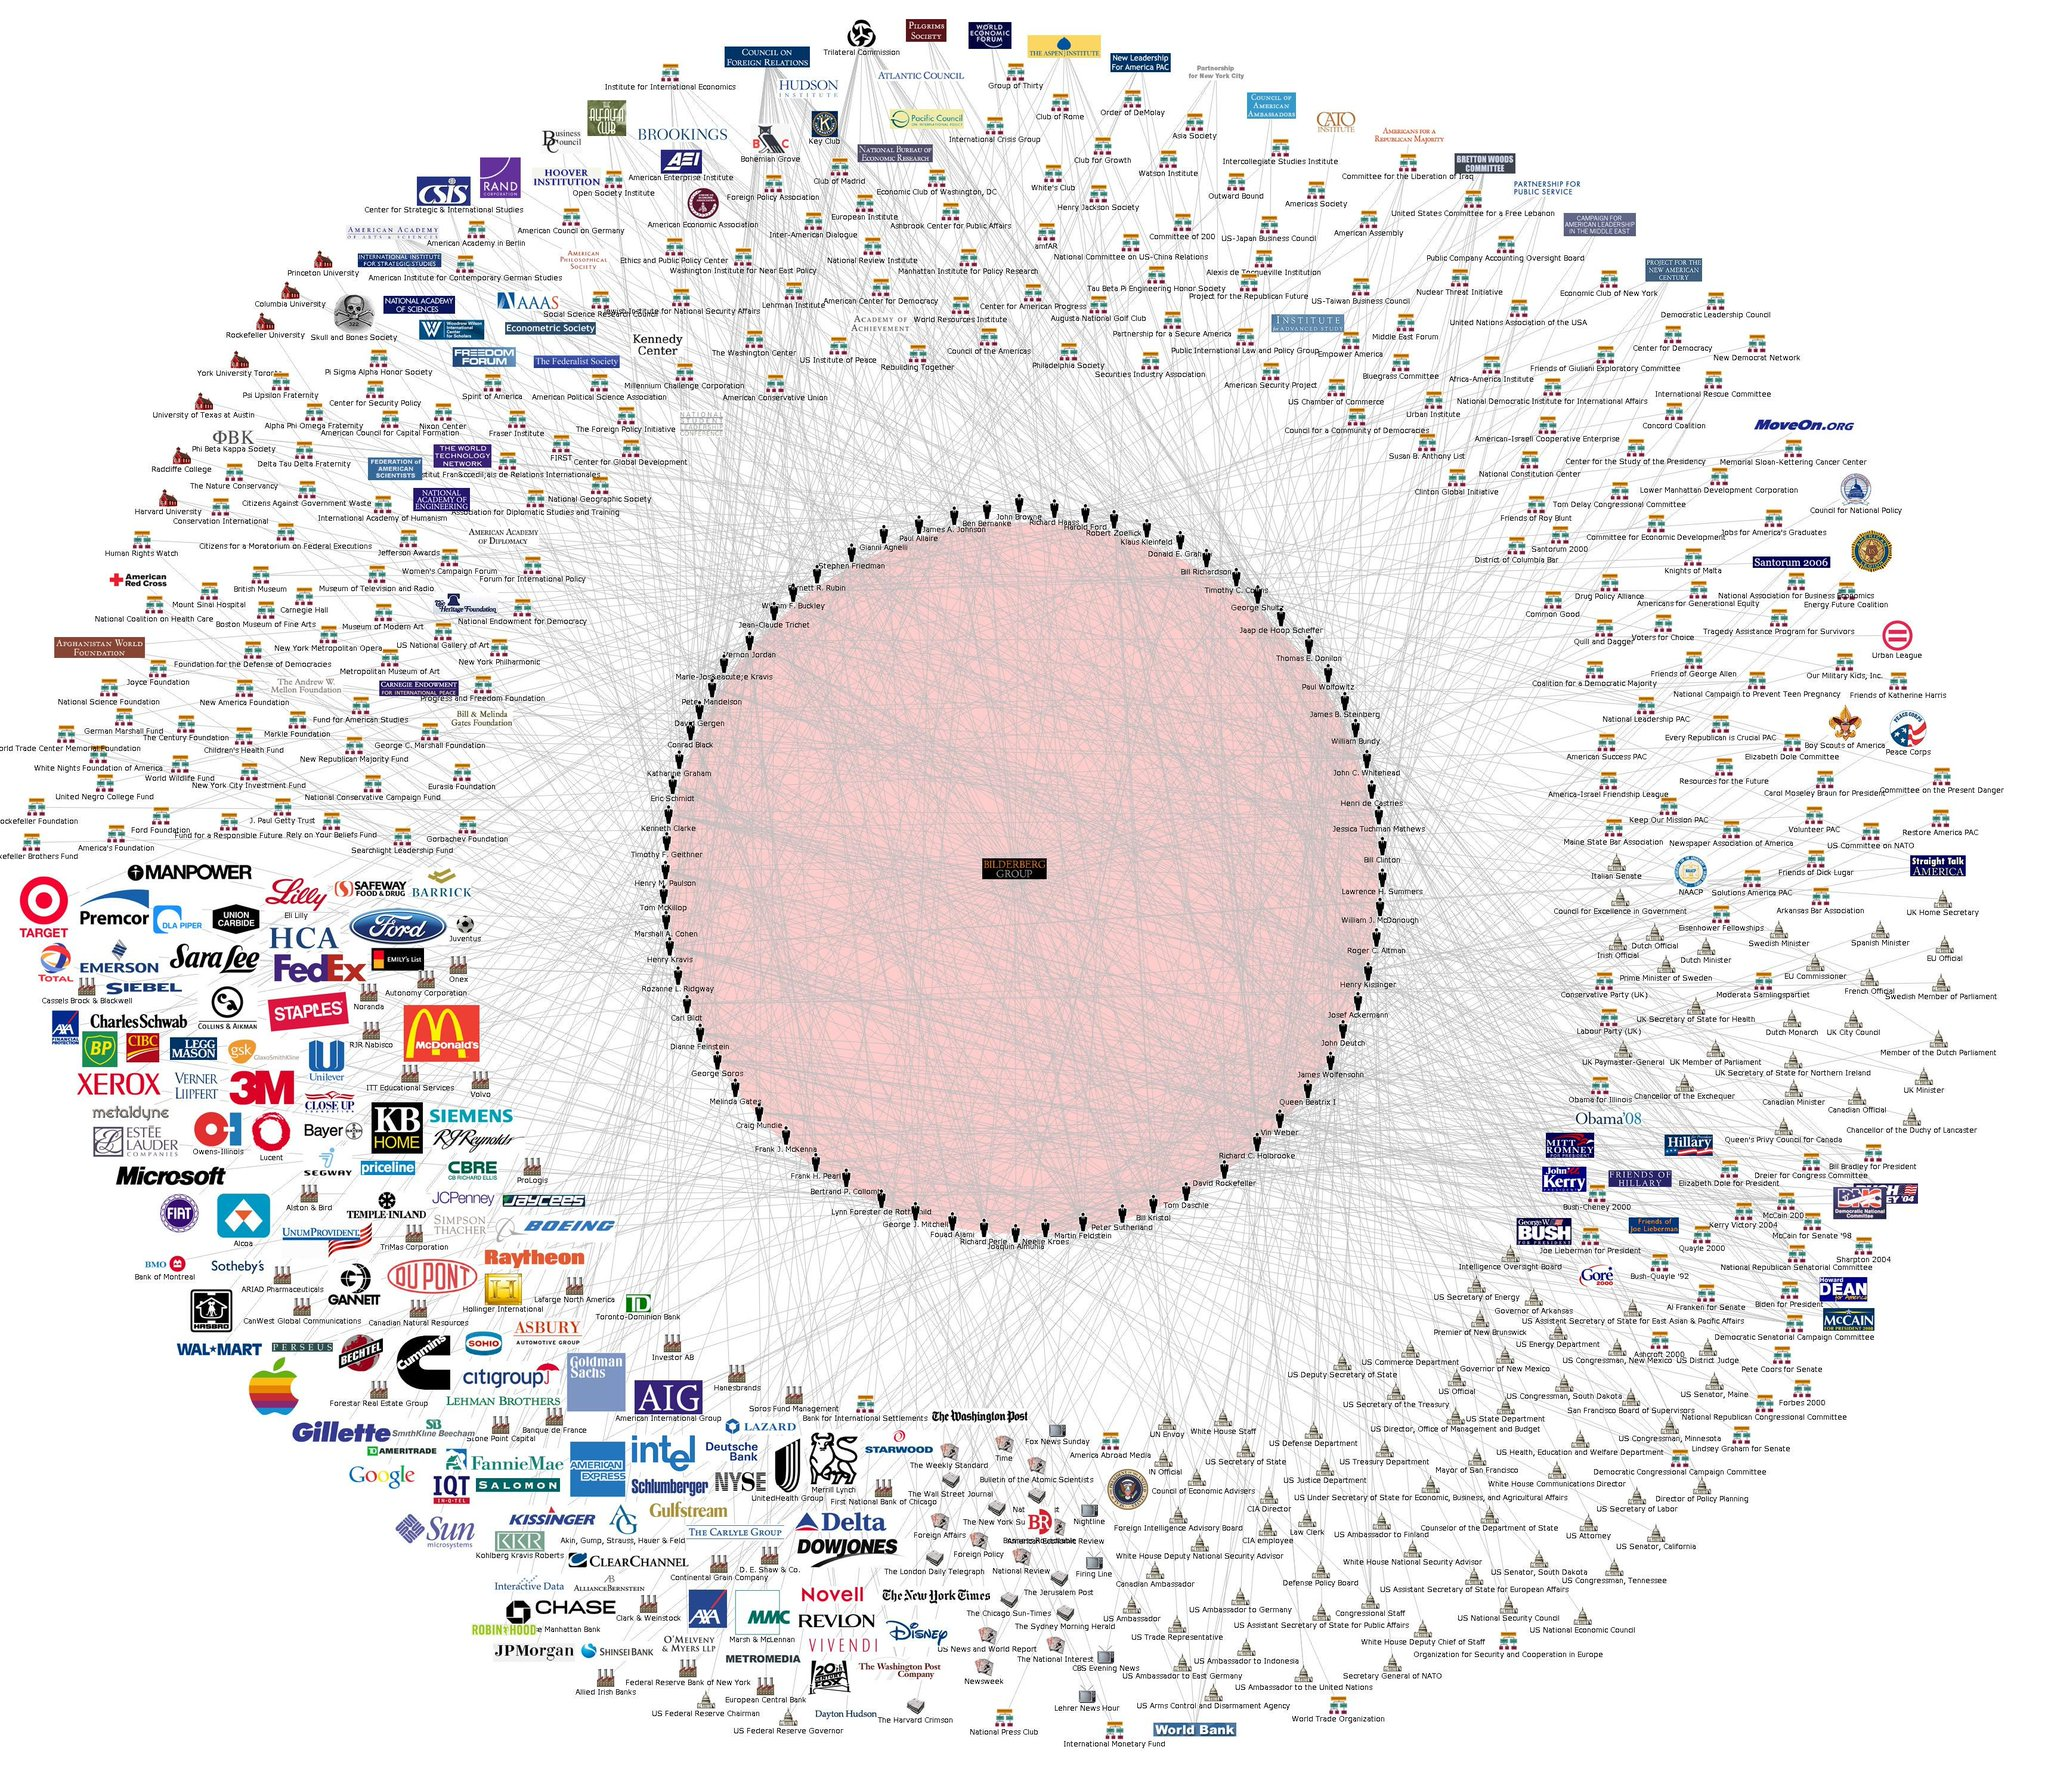 Bilderberg connections